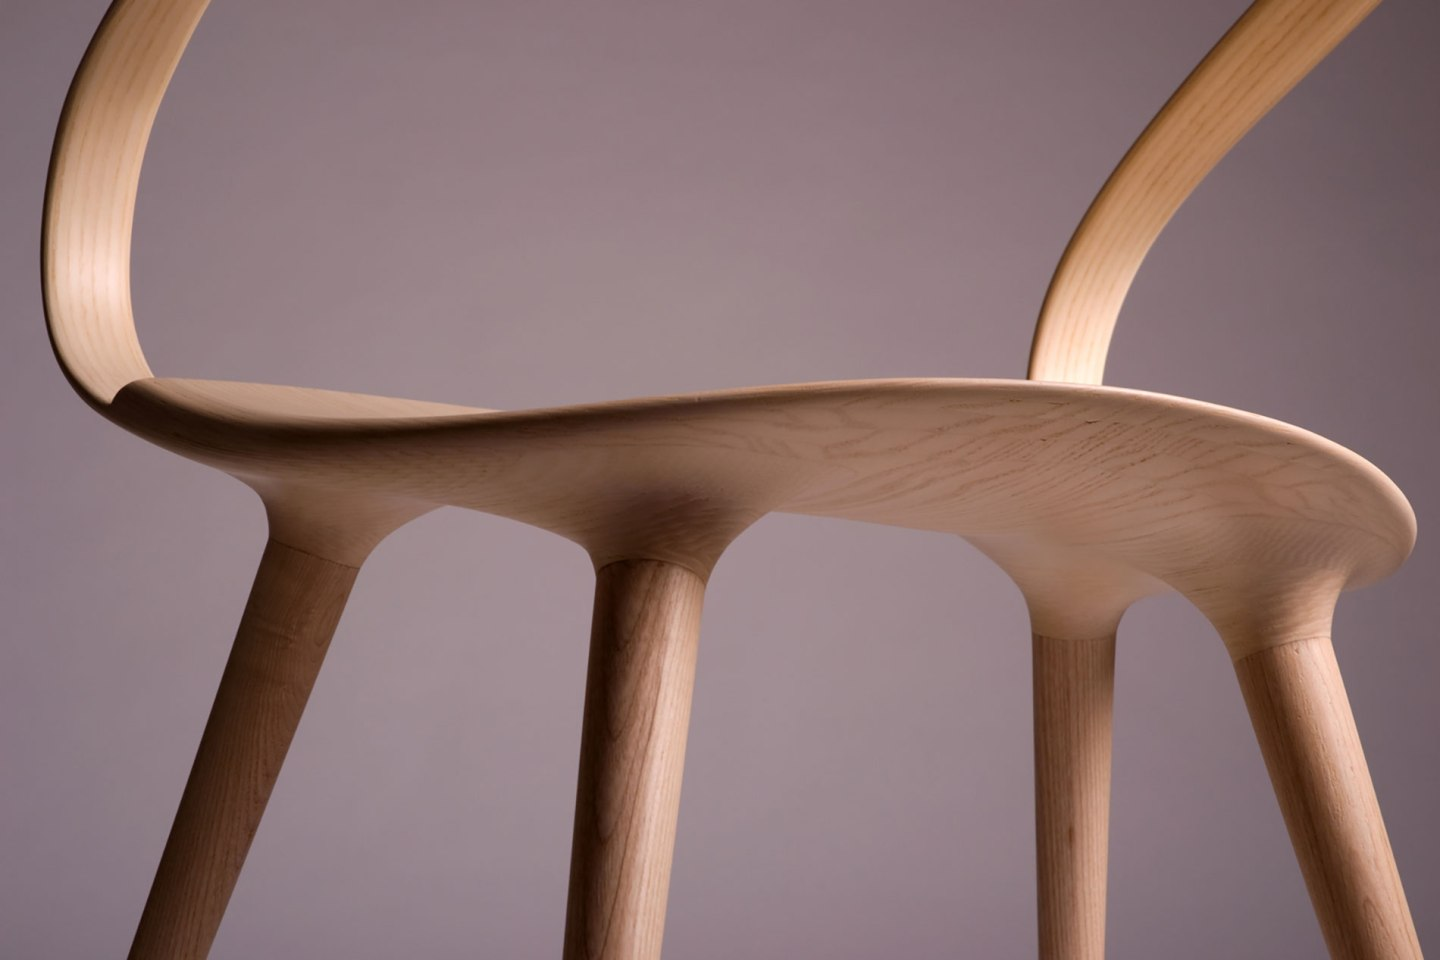 velo-chair-by-jan-waterston-7